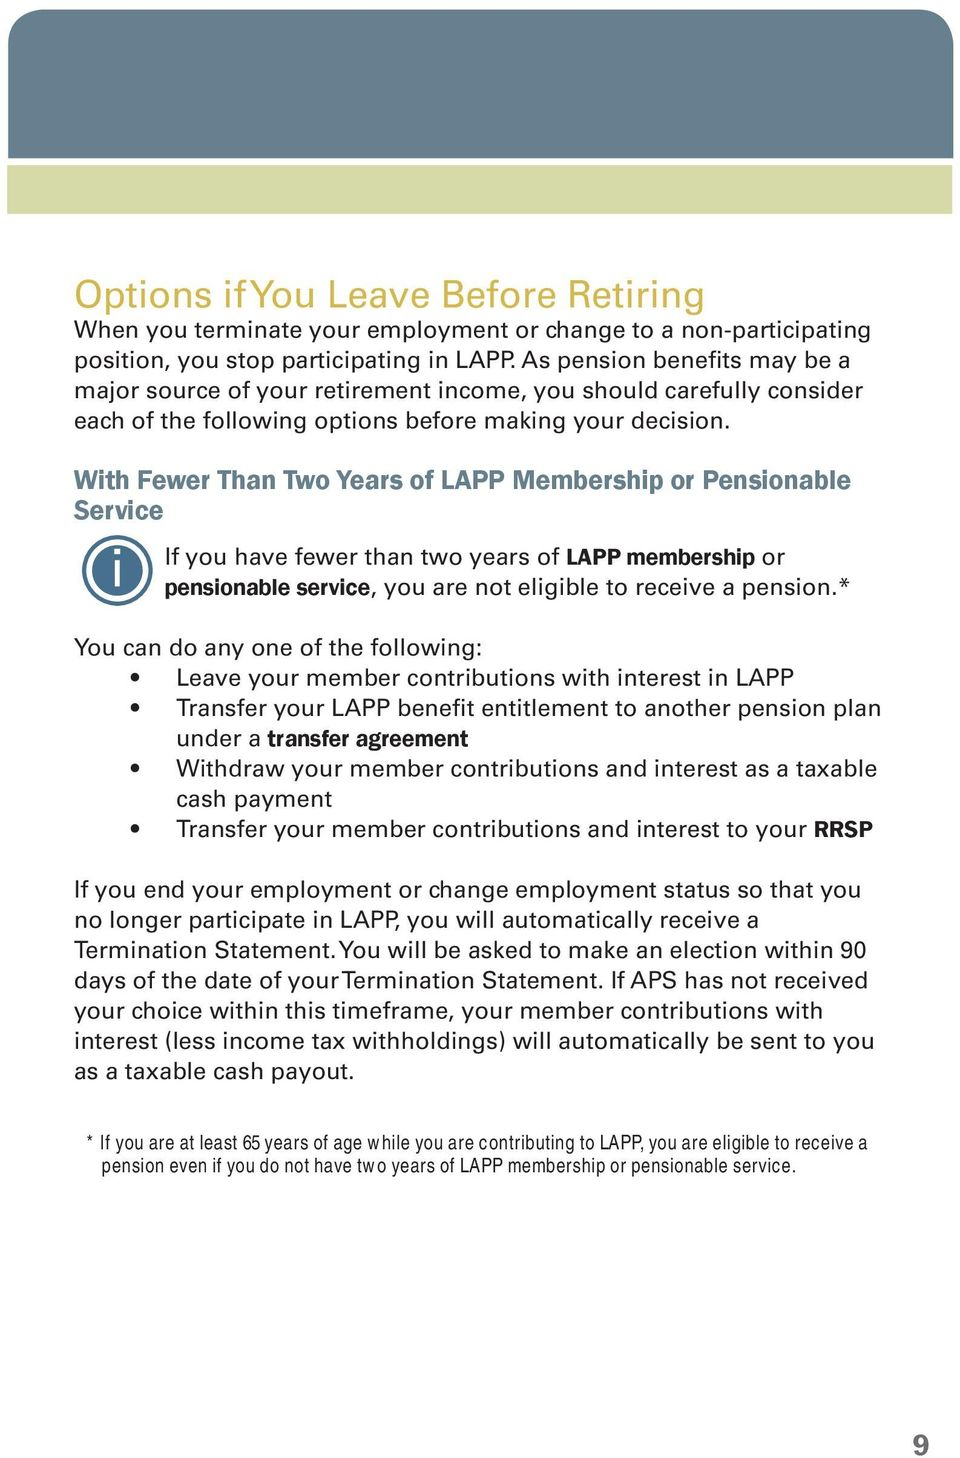 With Fewer Than Two Years of LAPP Membership or Pensionable Service i If you have fewer than two years of LAPP membership or pensionable service, you are not eligible to receive a pension.